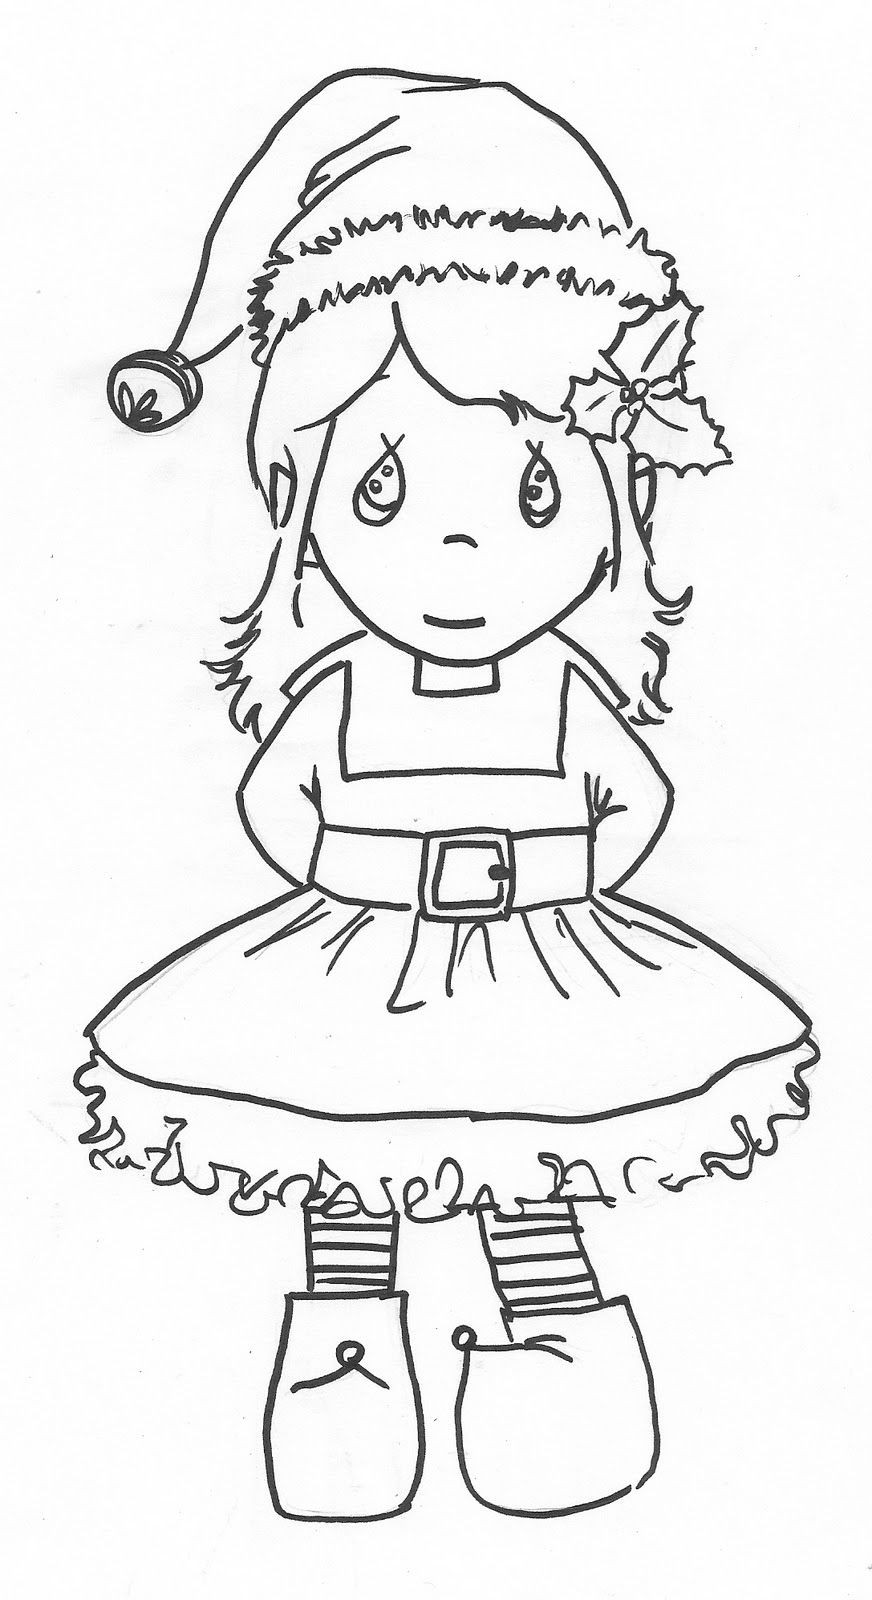 Coloring Sheets For Girls Printable Chistmas  Cute Elf Coloring Pages AZ Coloring Pages